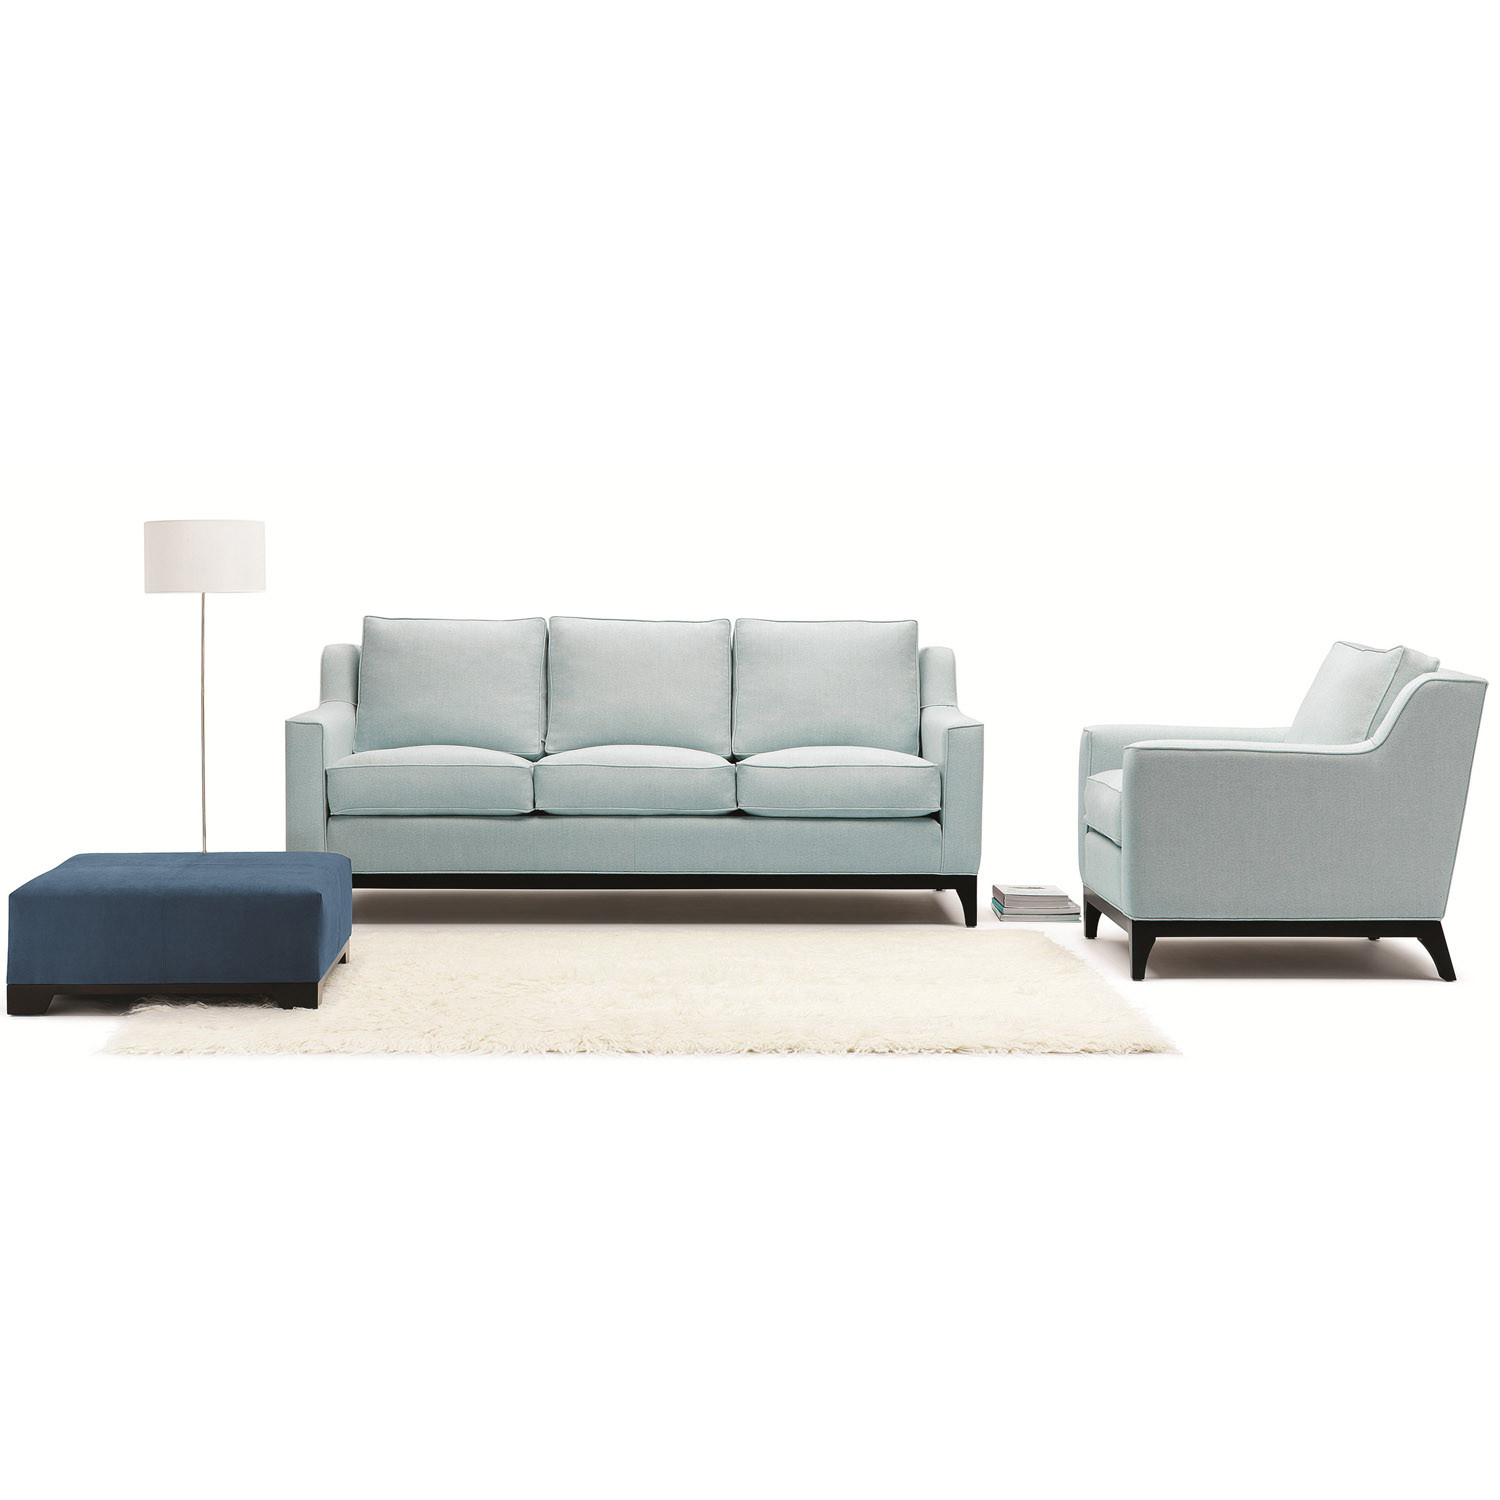 Lysander Soft Seating Range